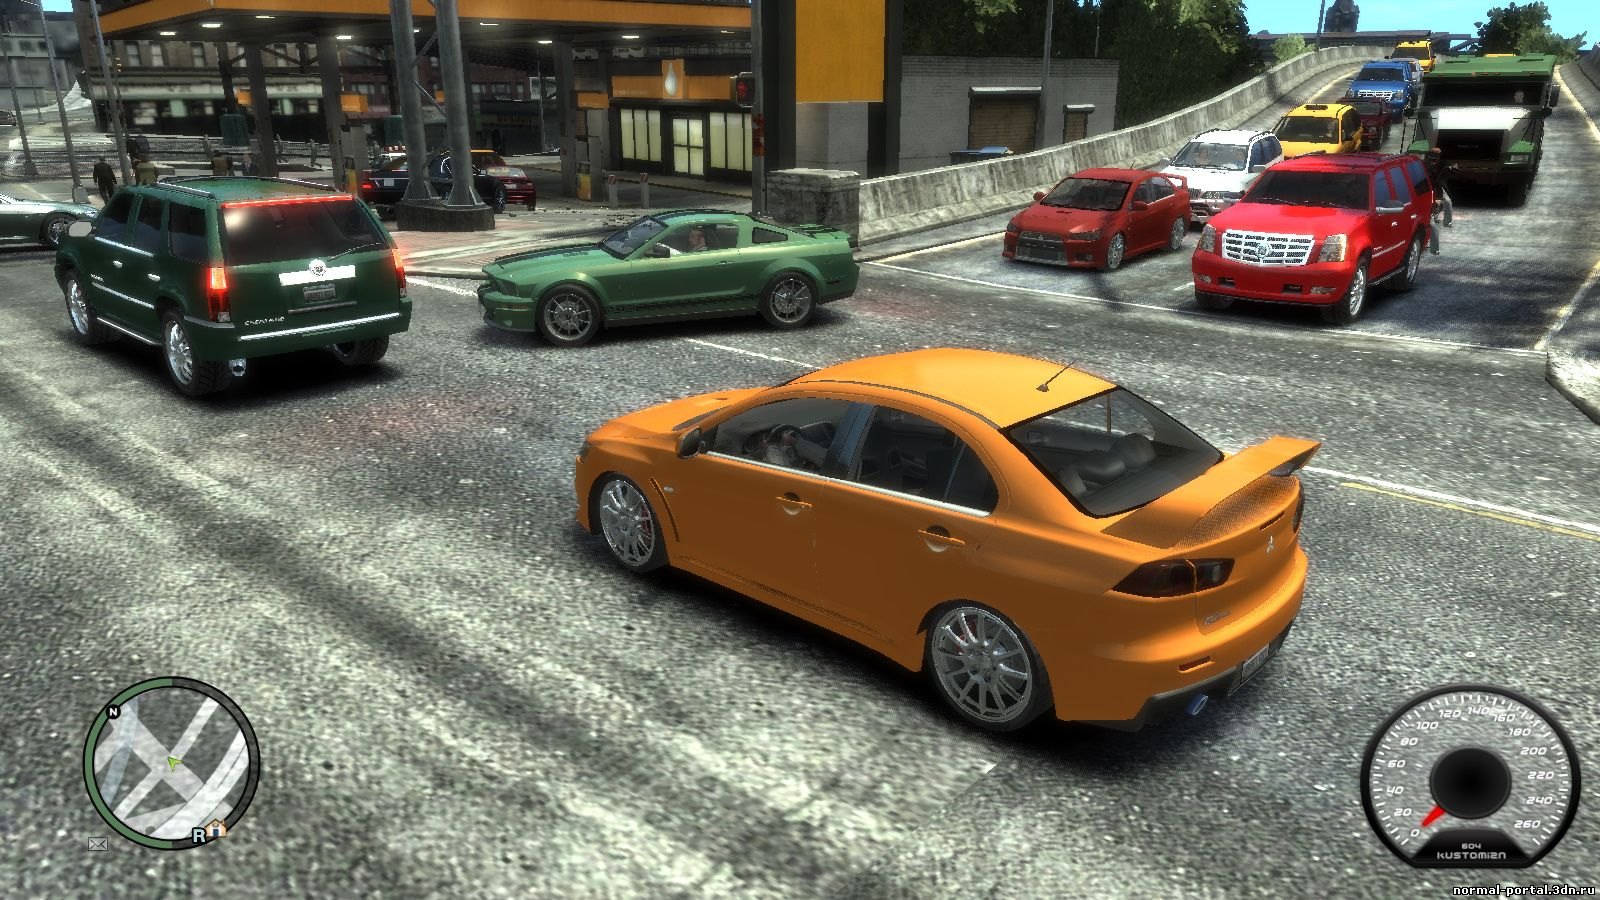 Gta 4 car list with pictures UEFA Champions League - Photos - Arsenal m